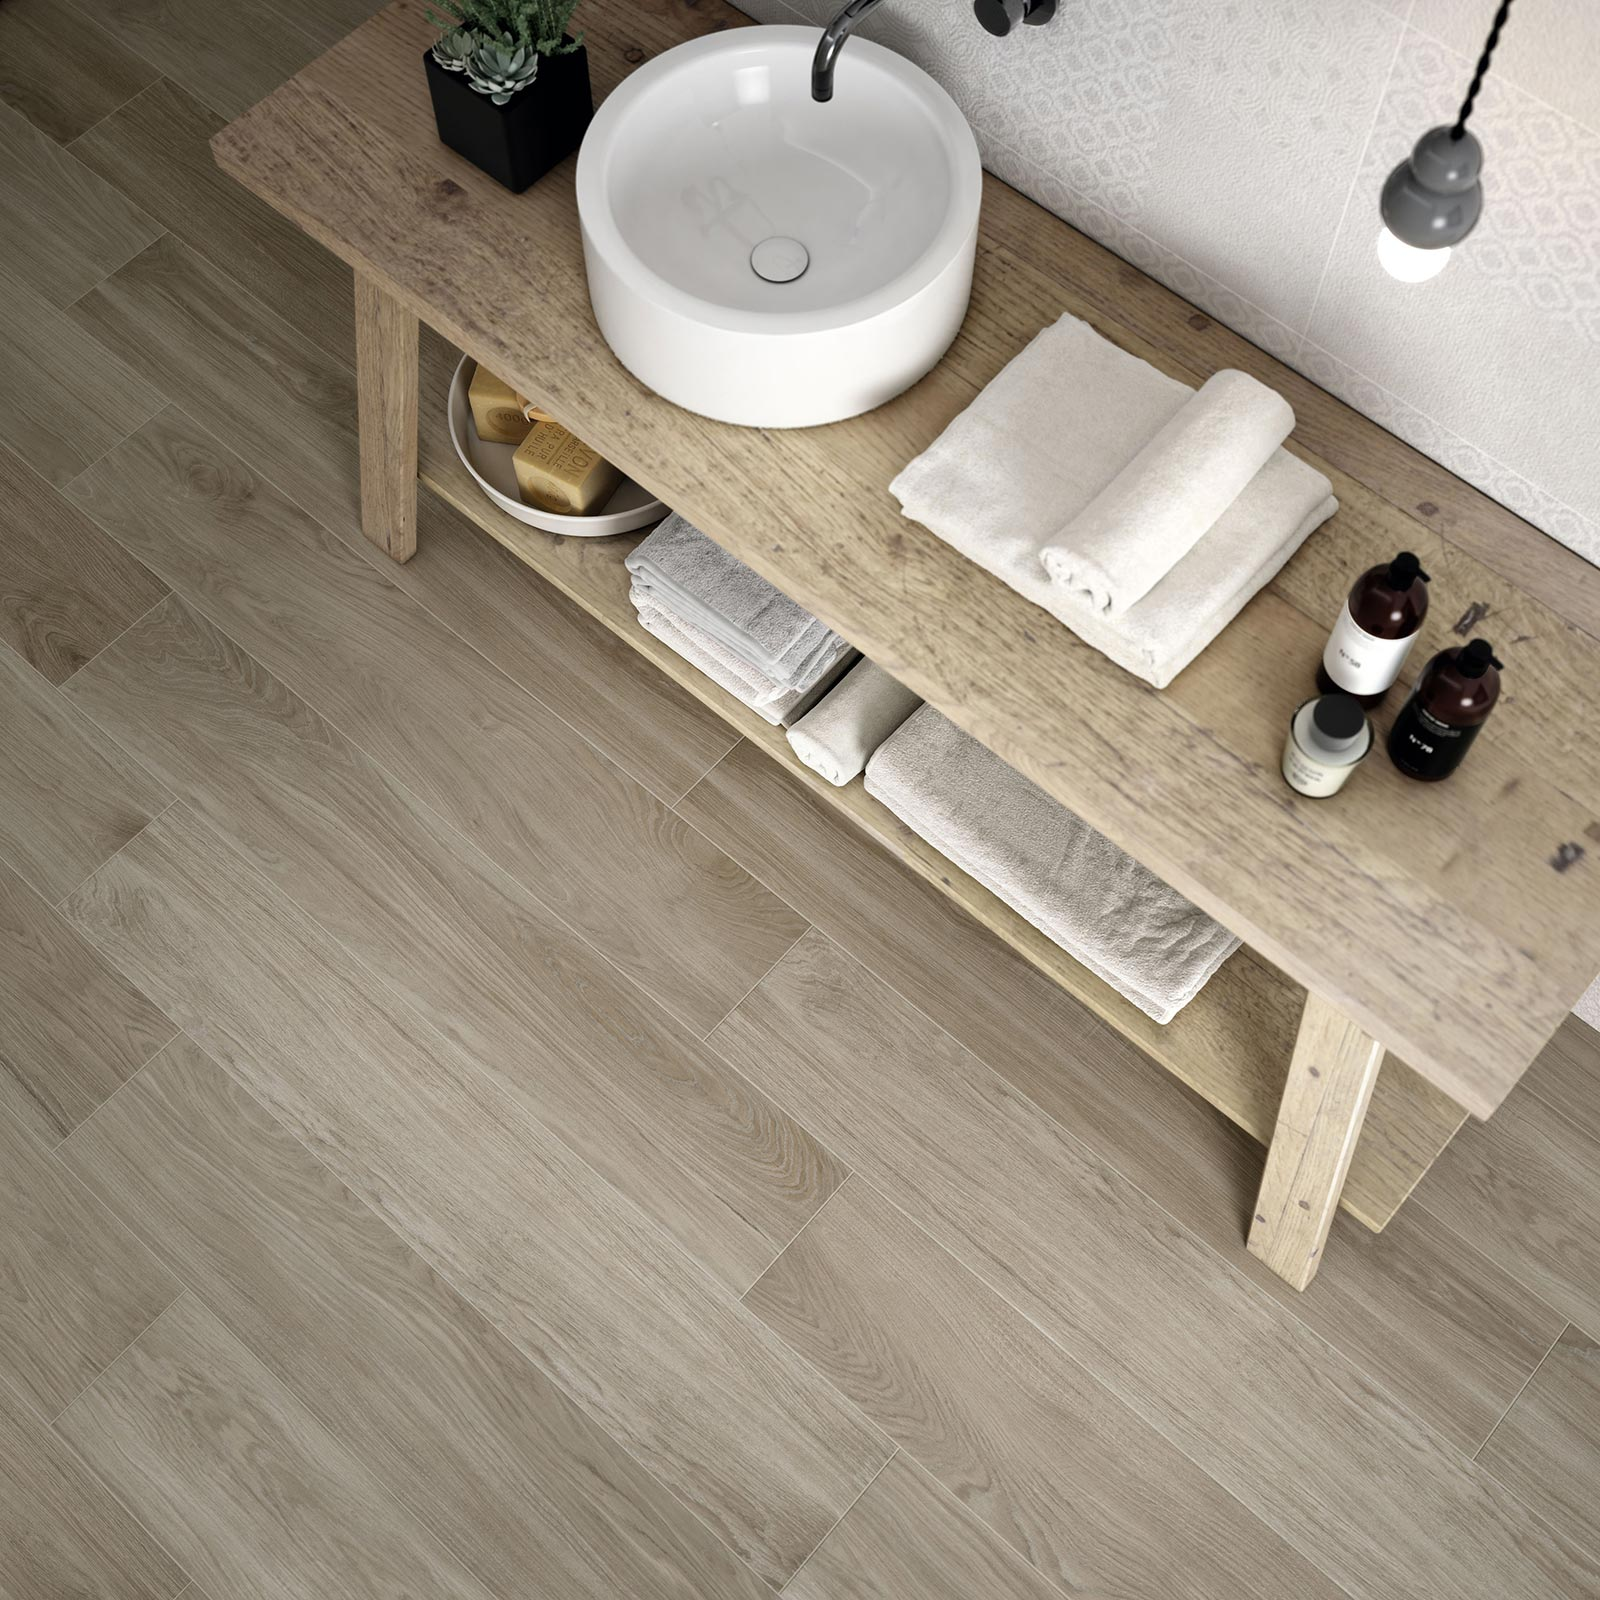 Carrelage imitation bois et parquet marazzi for Parquet imitation carrelage